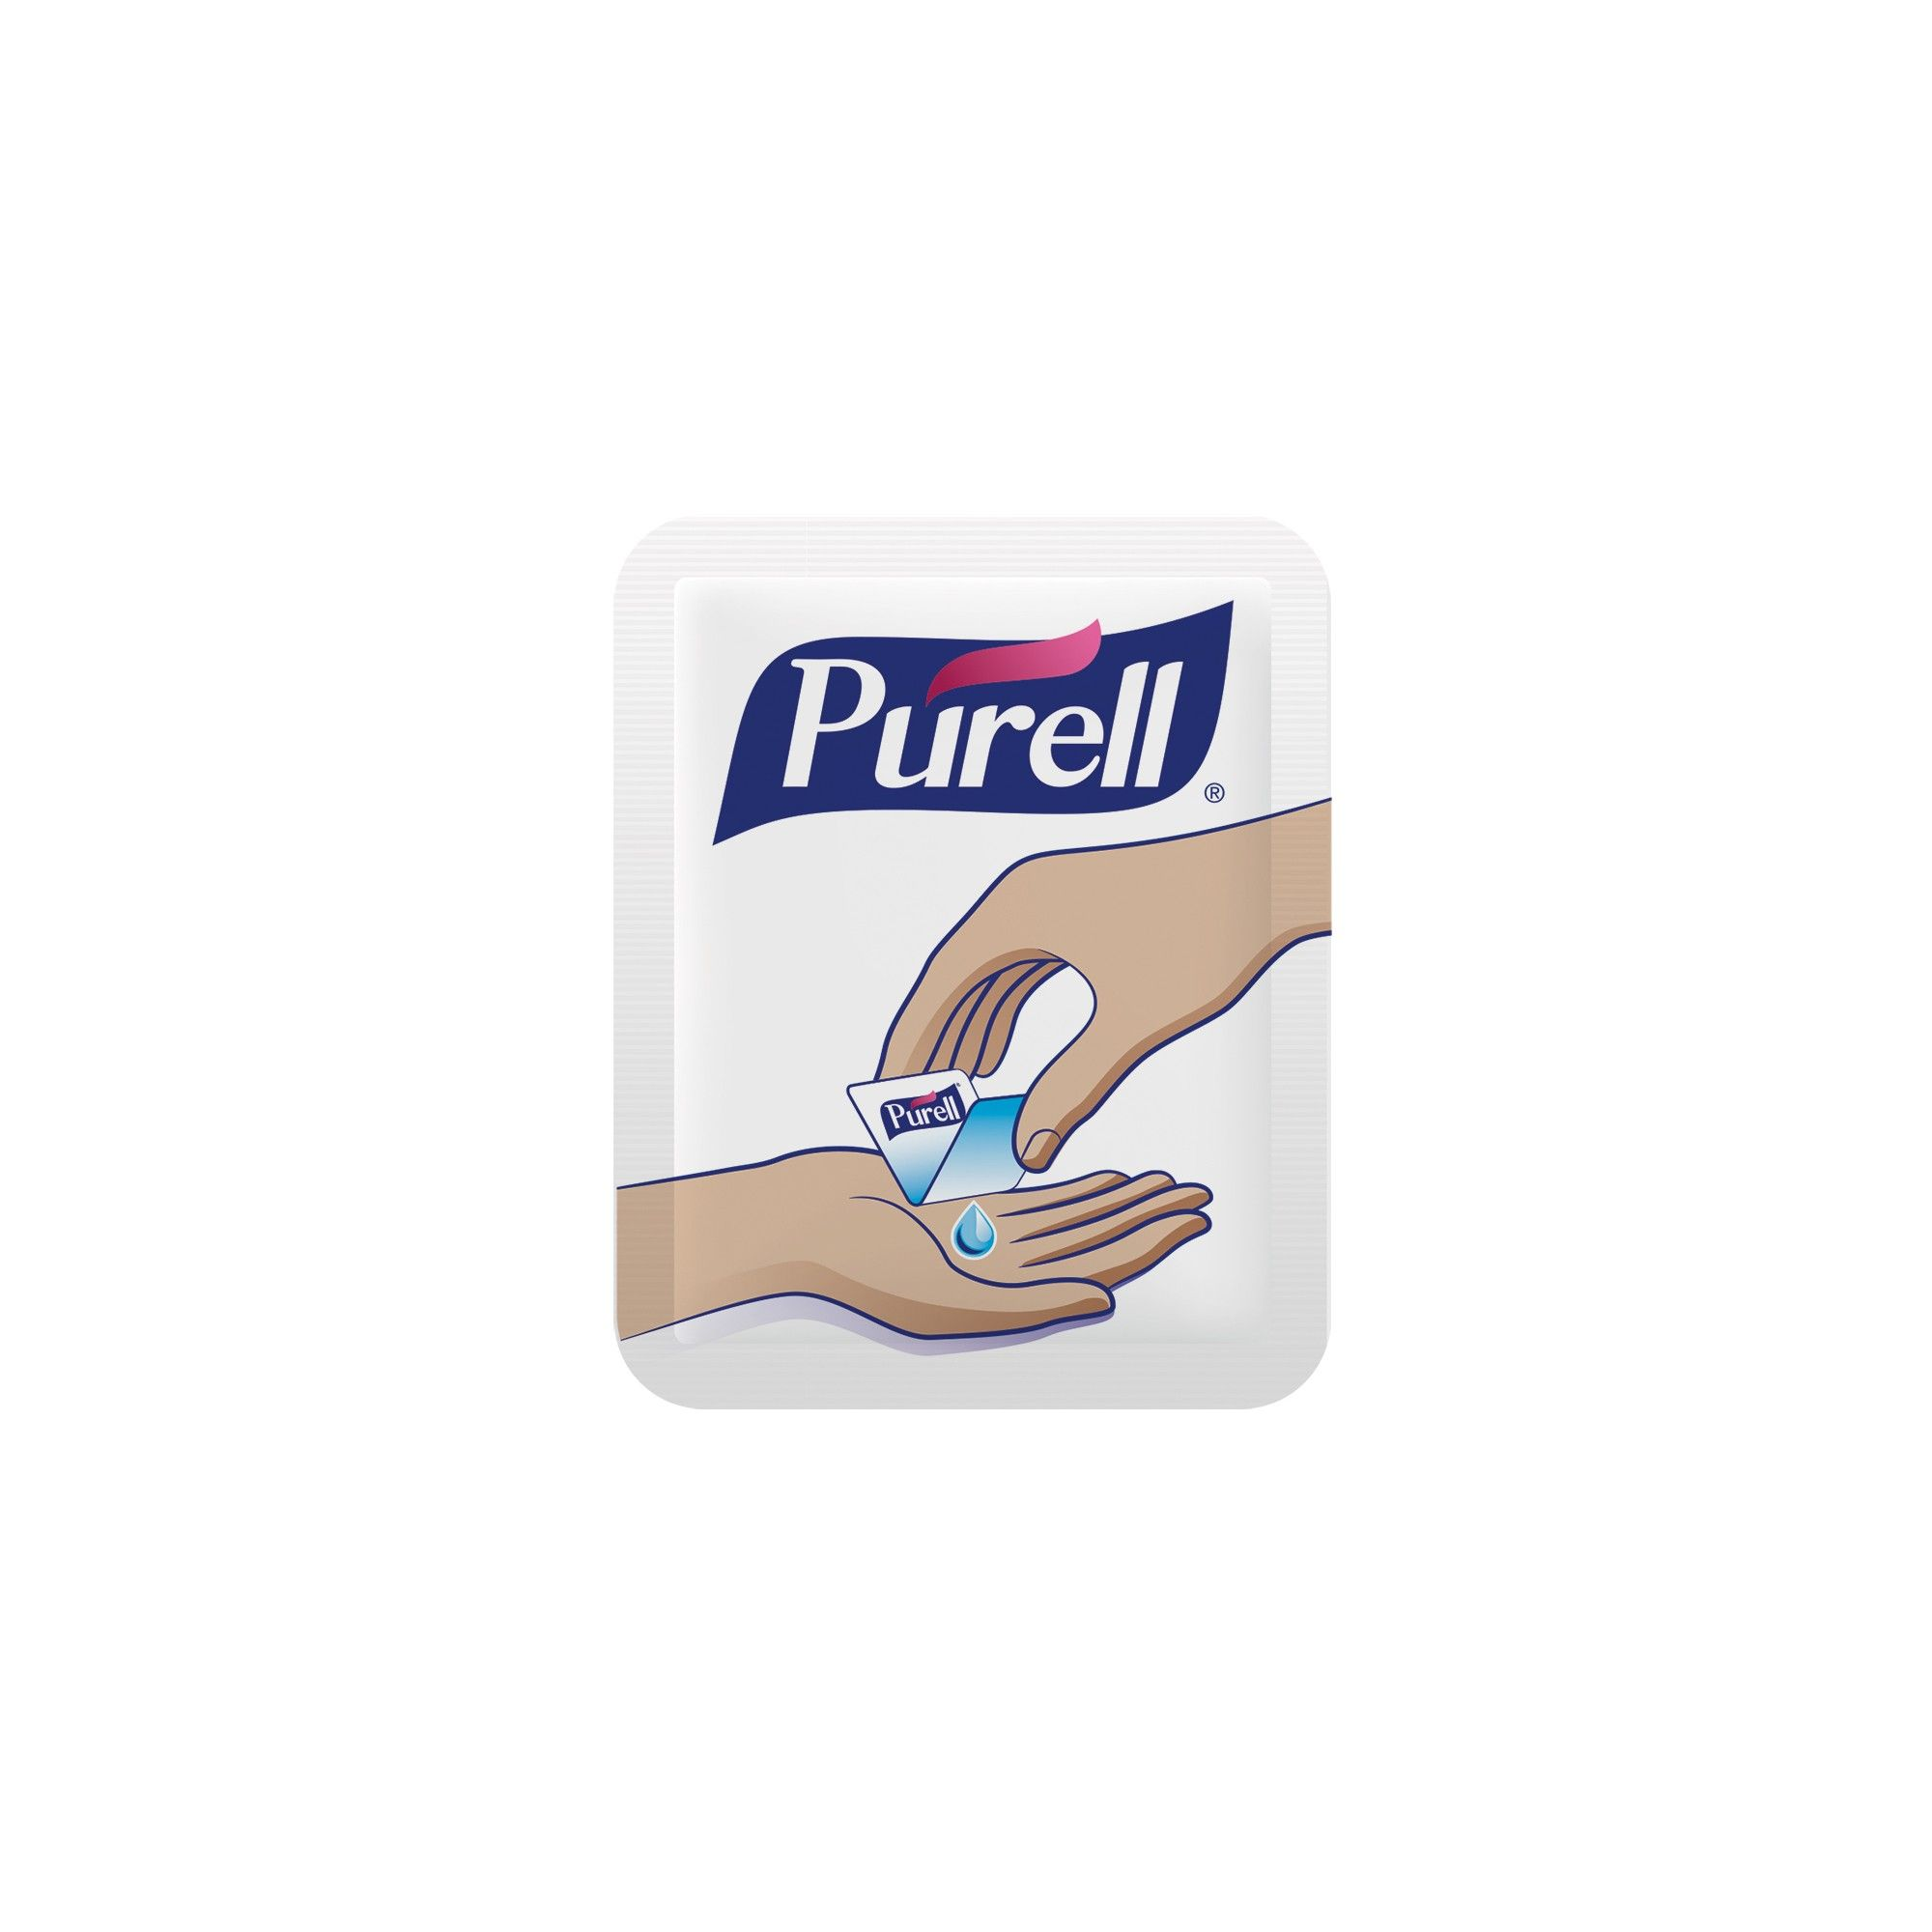 Purell Original Hand Sanitizer 24ct Hand Sanitizer Pouch How